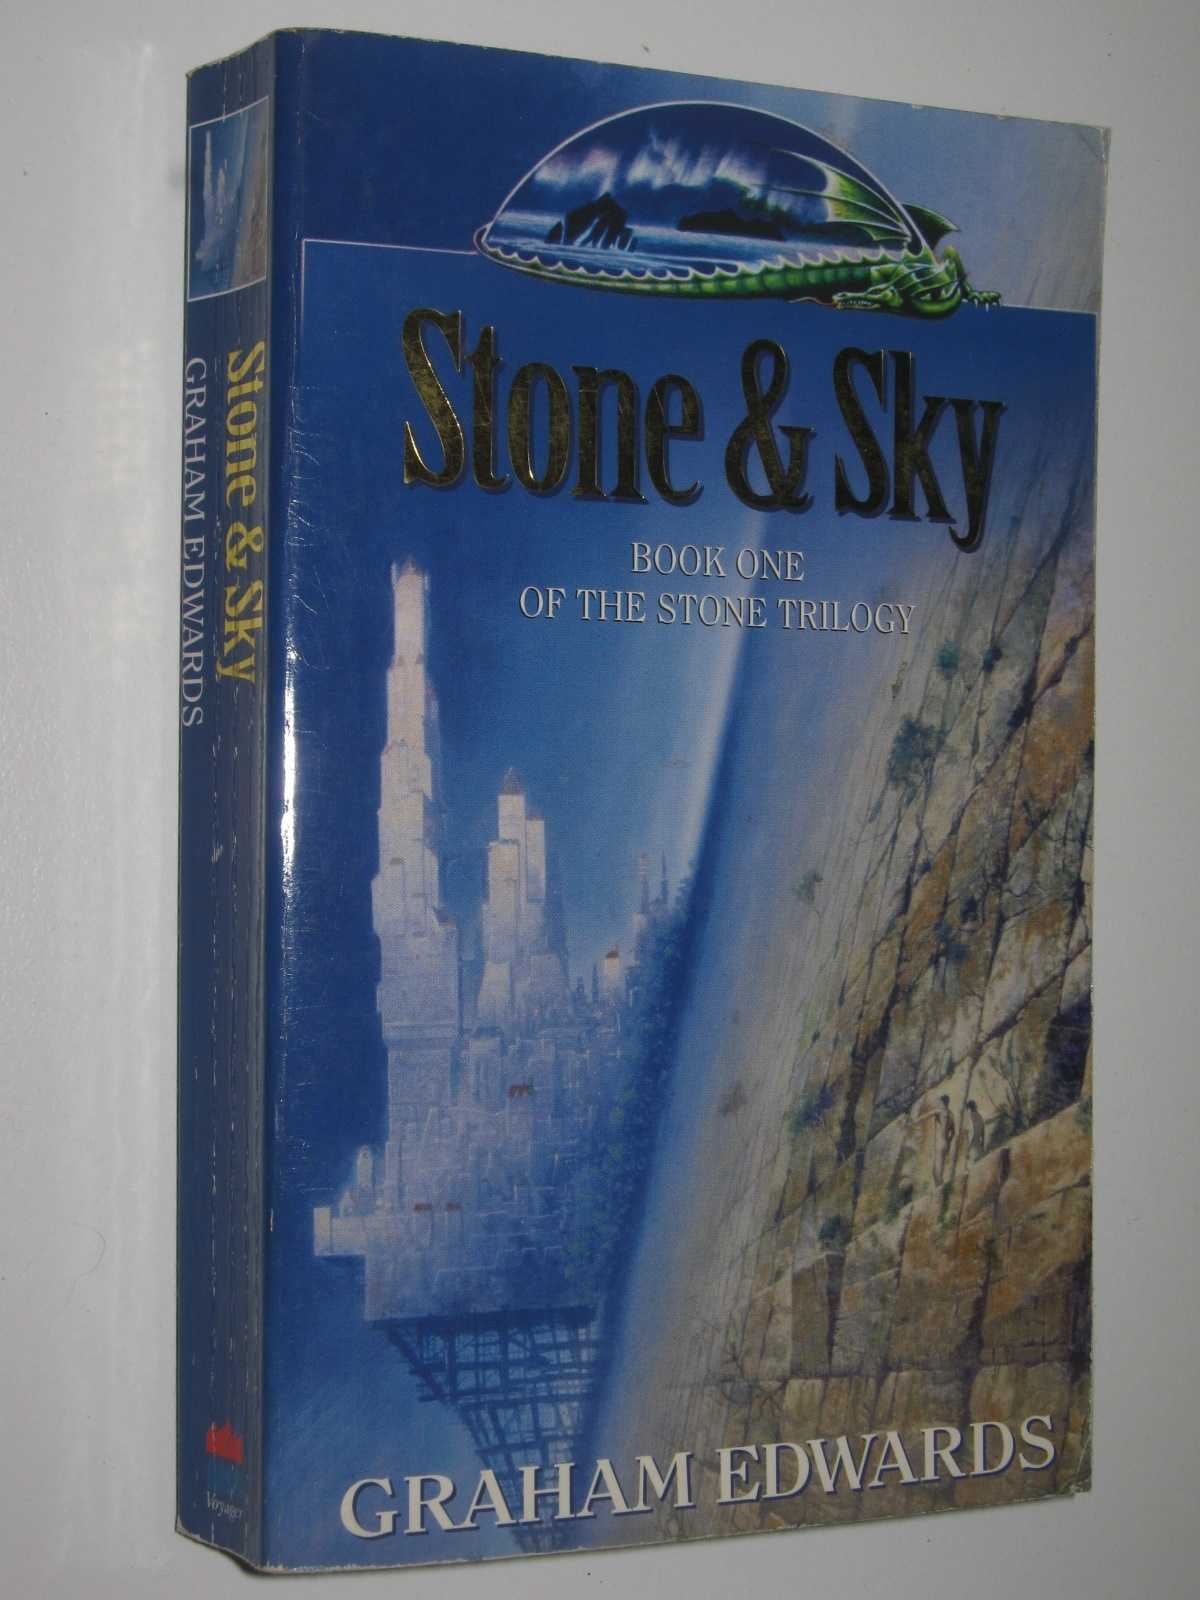 Image for Stone and Sky - The Stone Trilogy #1